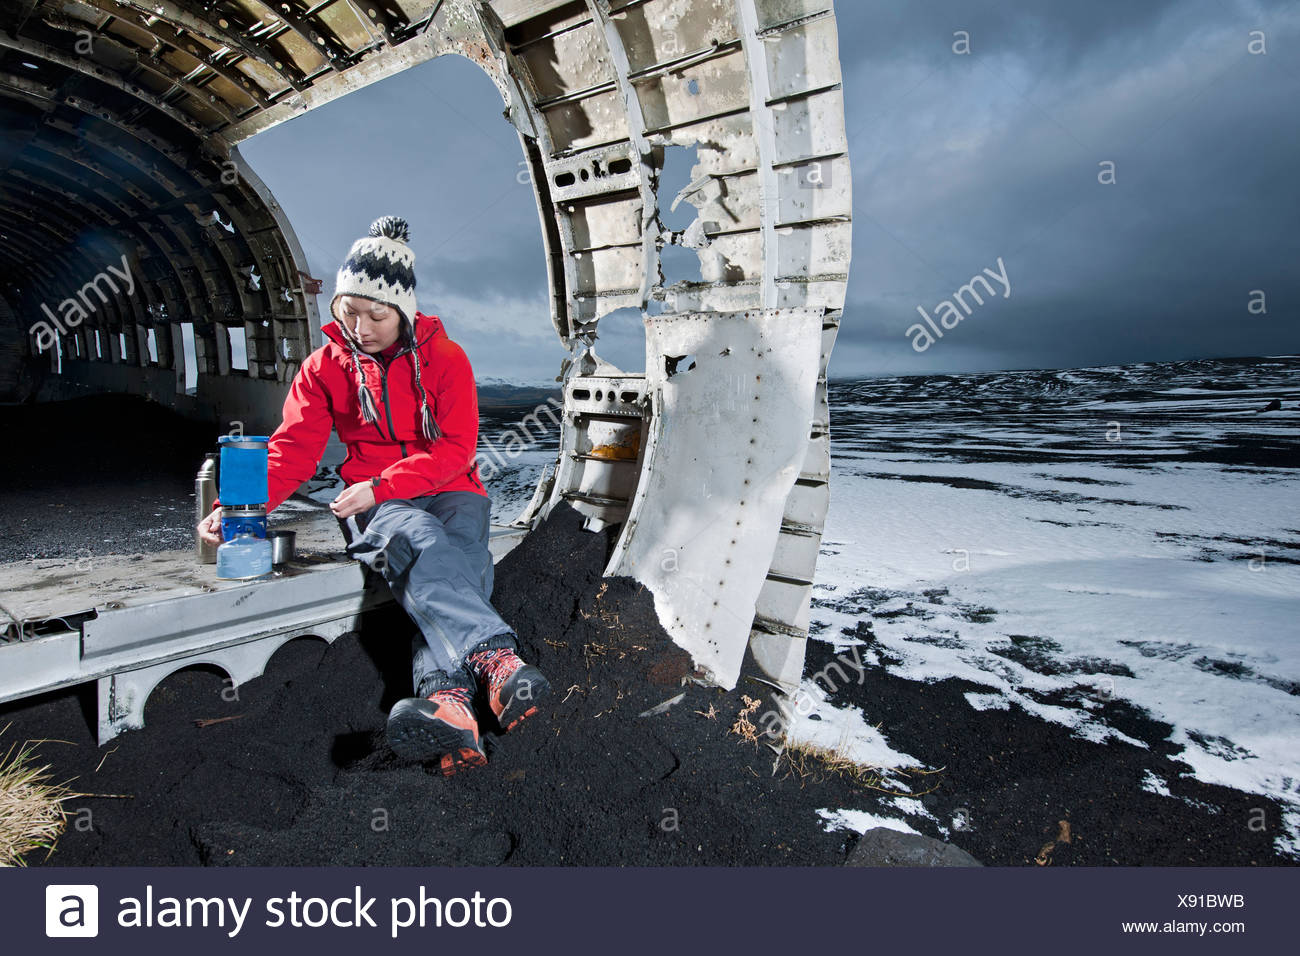 Hiker sitting in airplane wreck in snow - Stock Image